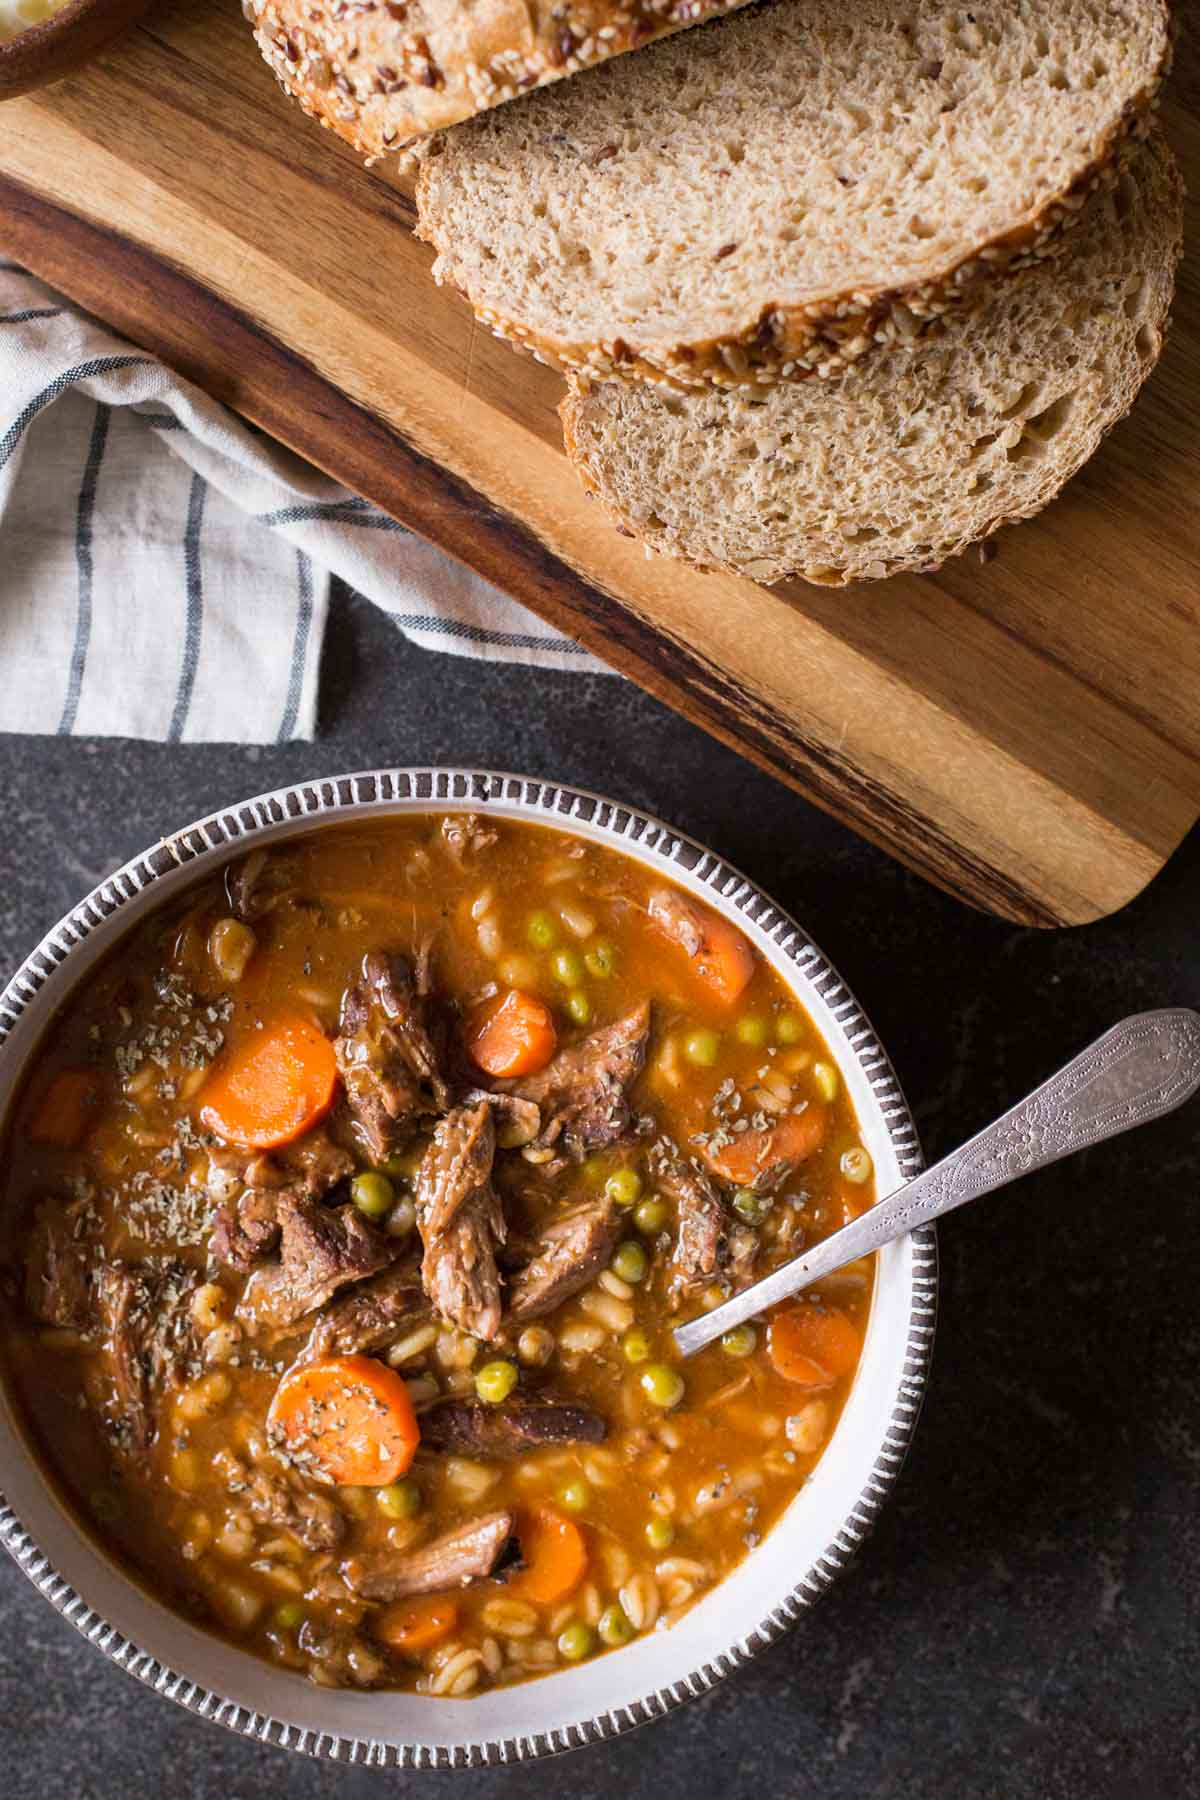 Beef and Barley Vegetable Soup in a bowl with a spoon, sitting next to a cutting board with bread on it.